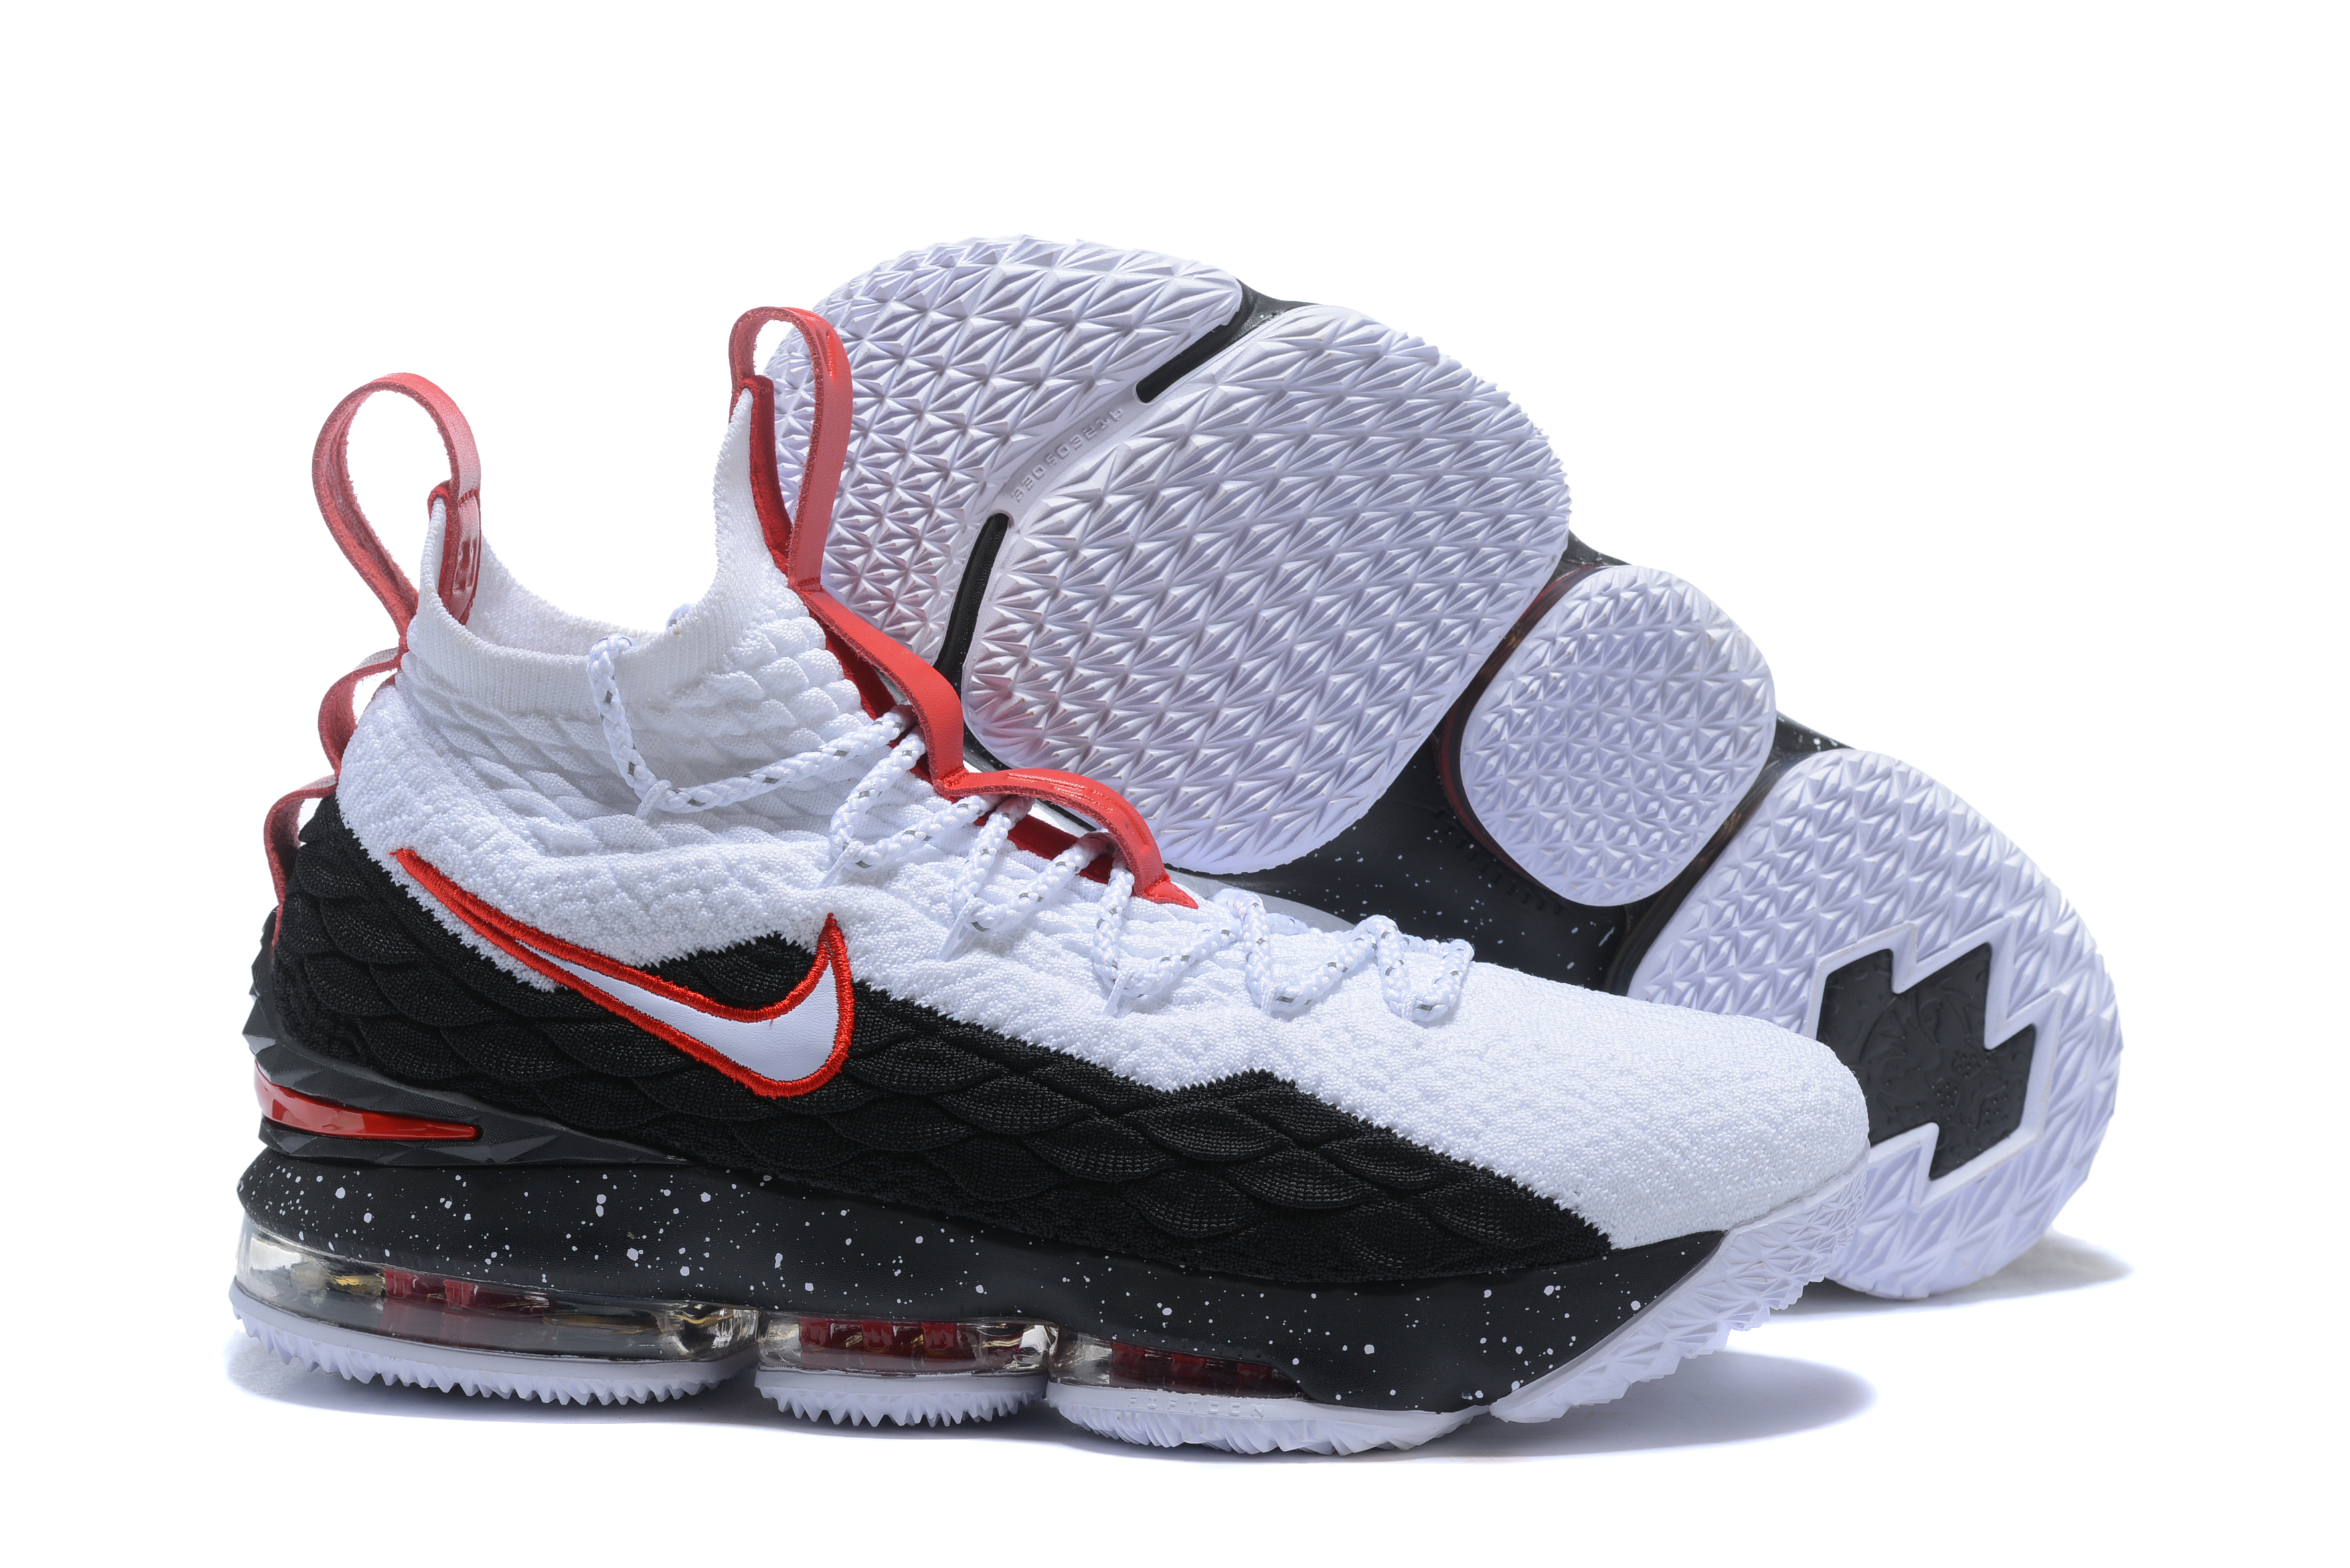 outlet store 11351 09c61 LeBron James 15 Shoes Contain Many Trendy Design